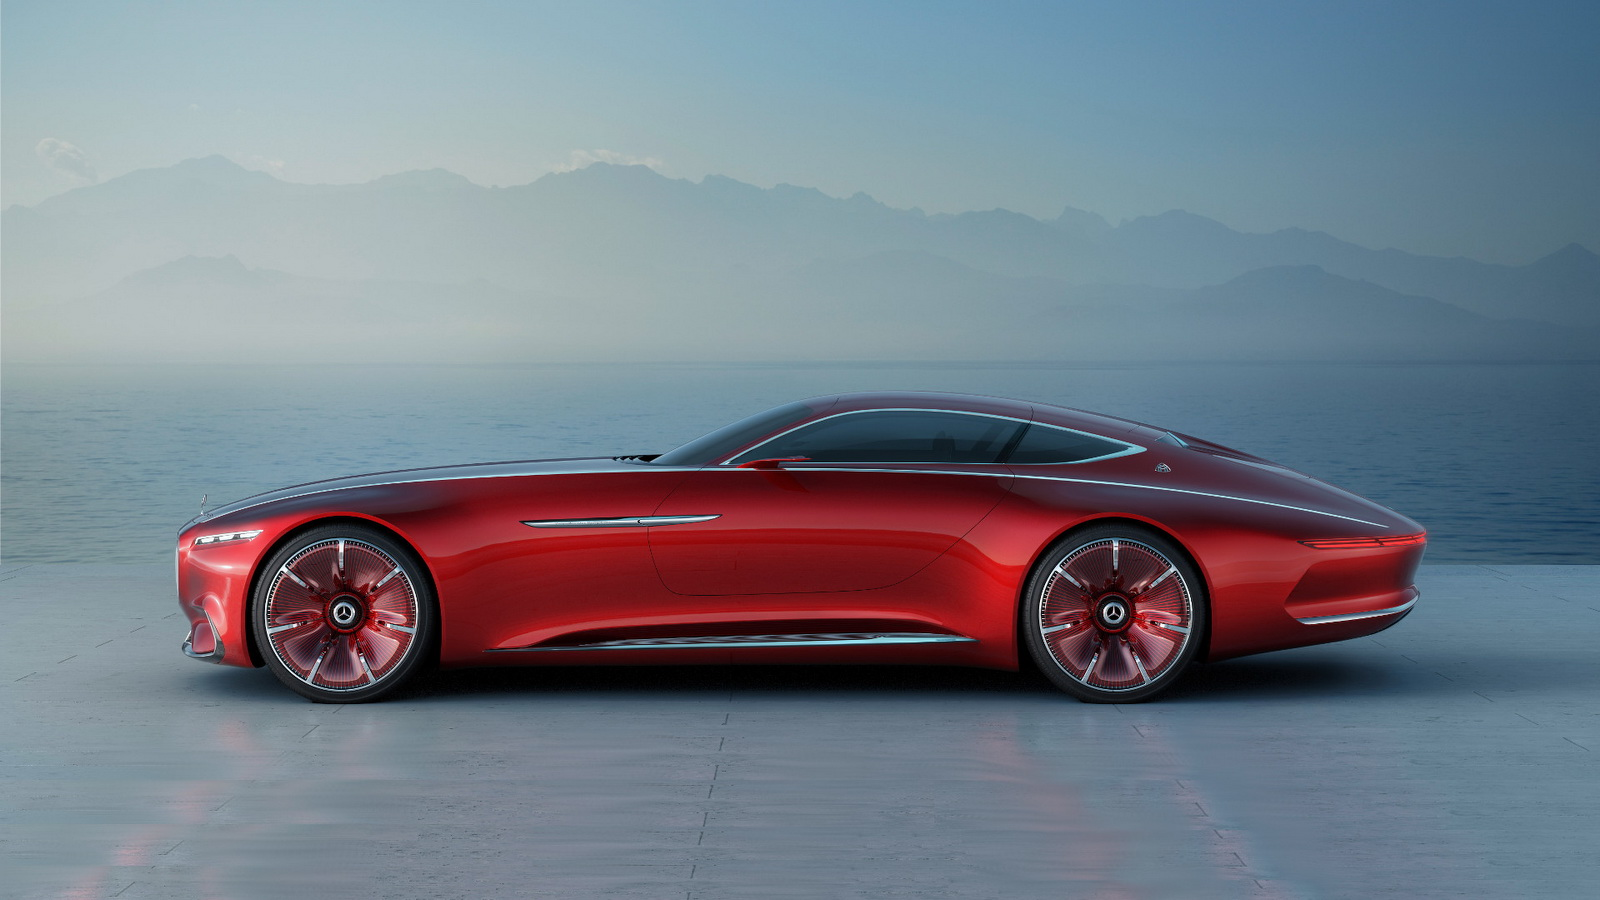 vision mercedes maybach 6 concept leaks ahead of official debut autoevolution. Black Bedroom Furniture Sets. Home Design Ideas